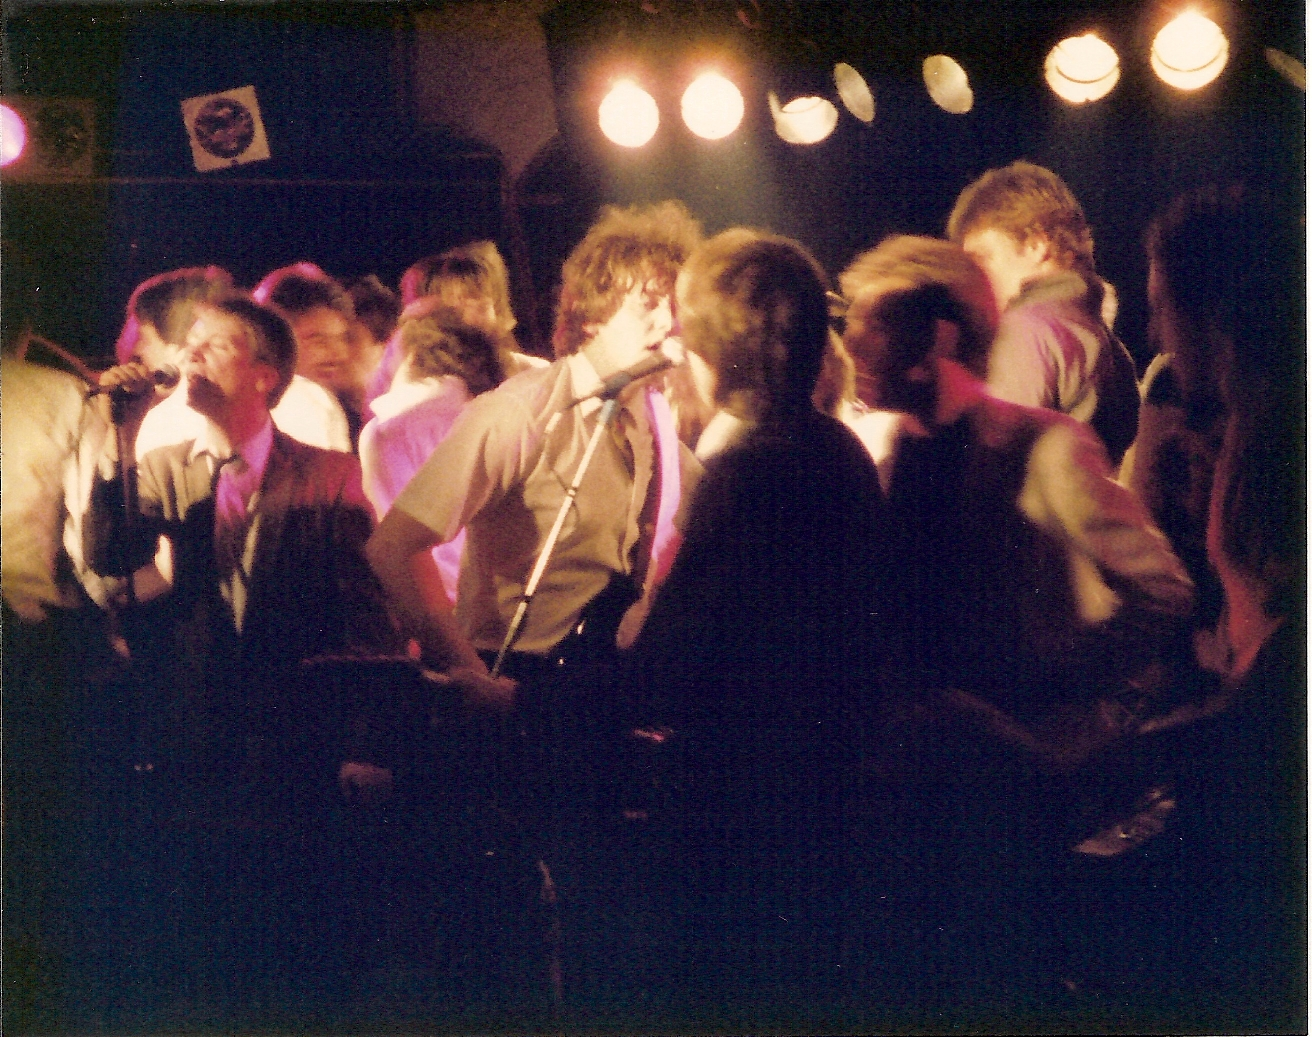 Eagertones at Hall Of Fame, mid 80's, Chris, Sean Onnery, Michael, probably perfoming Romantics What I Like About You, with the crowd on stage, at the Hall Of Fame in Seattle's University District, mid 80's.